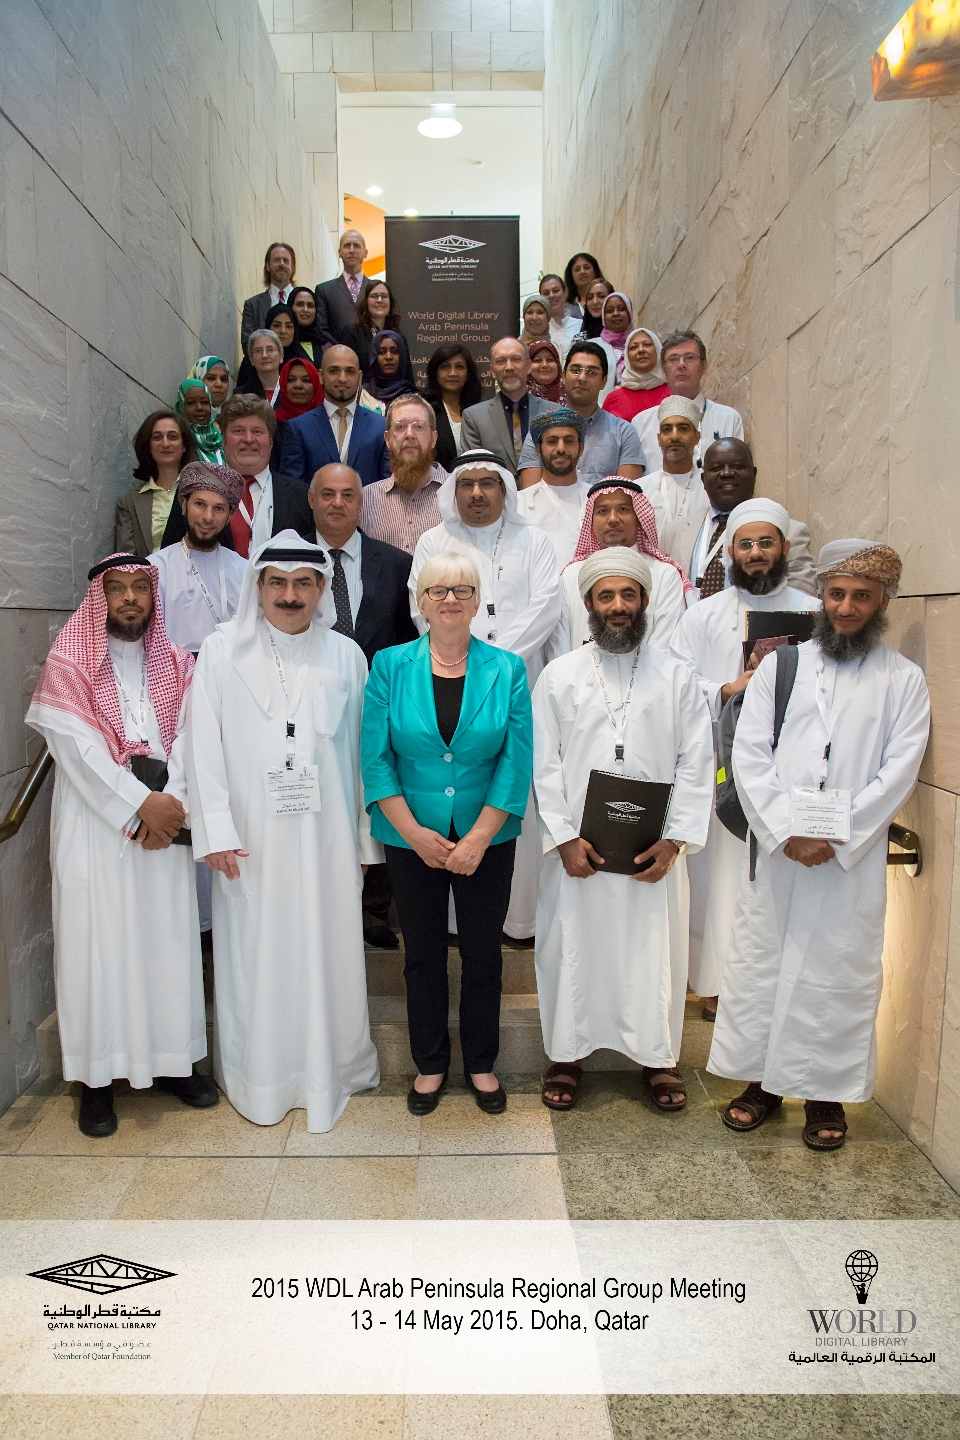 A group photo of the WDL Arab Peninsula Regional Group meeting in Doha